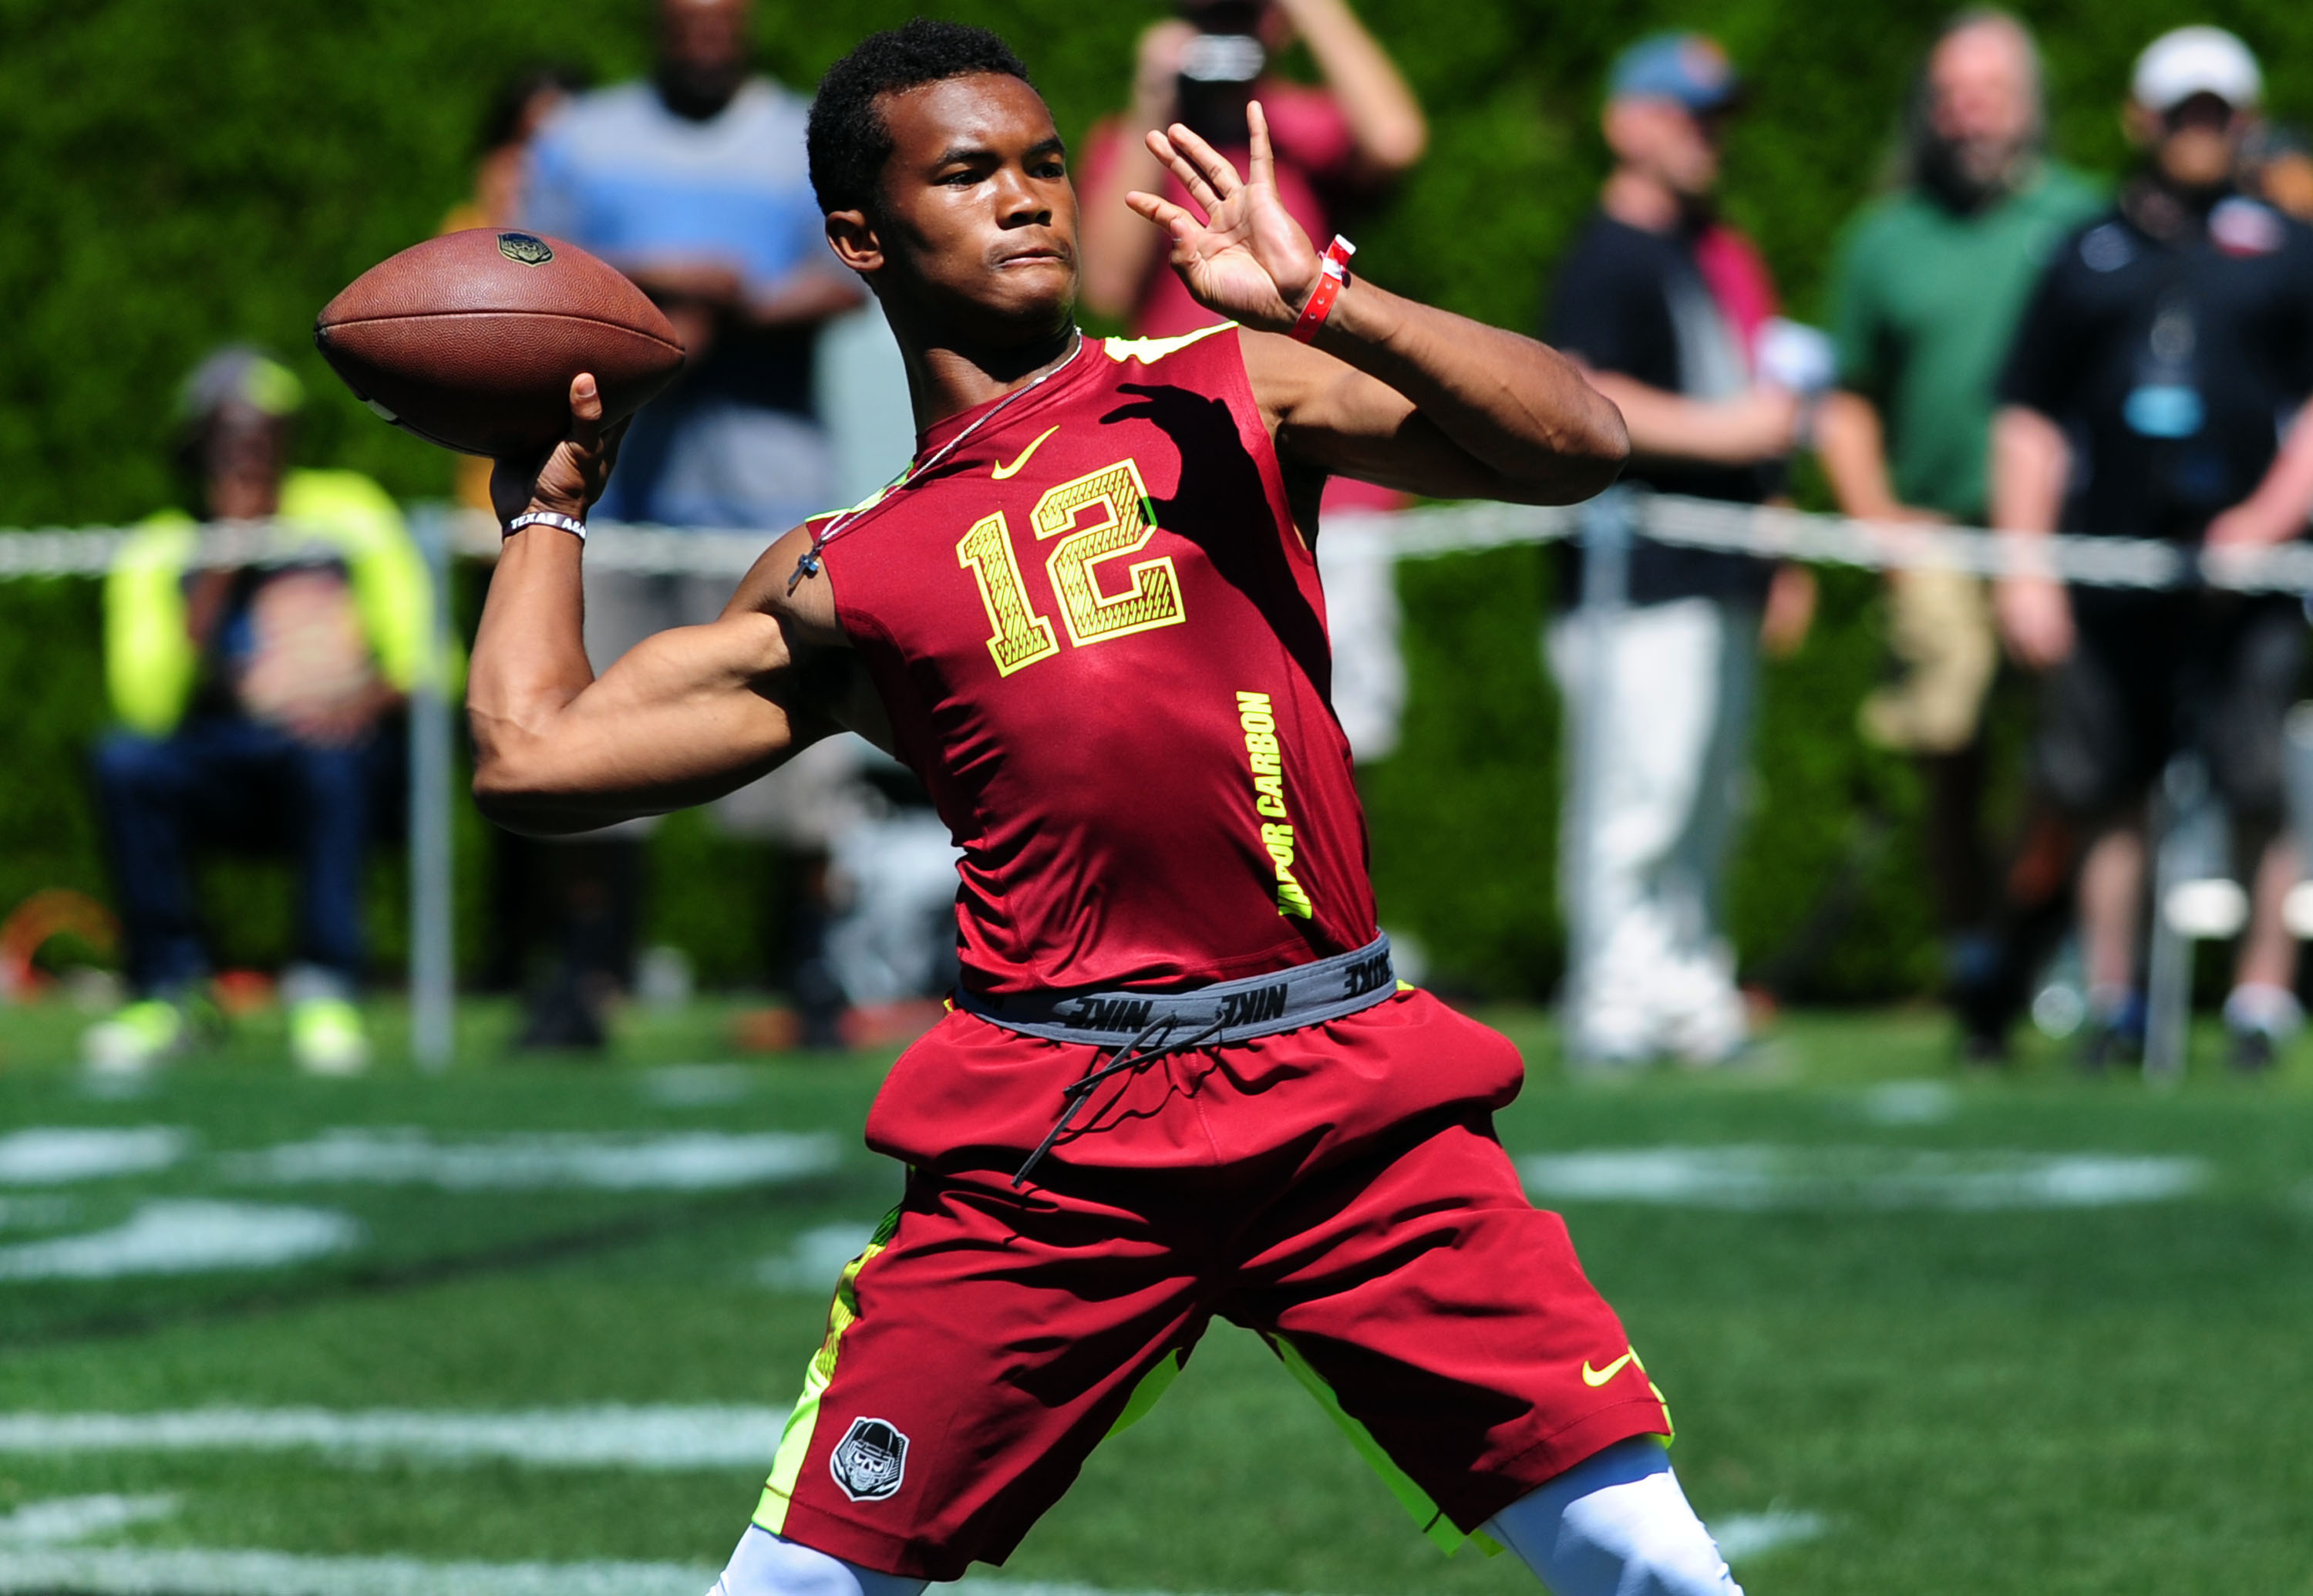 kyler murray - photo #17